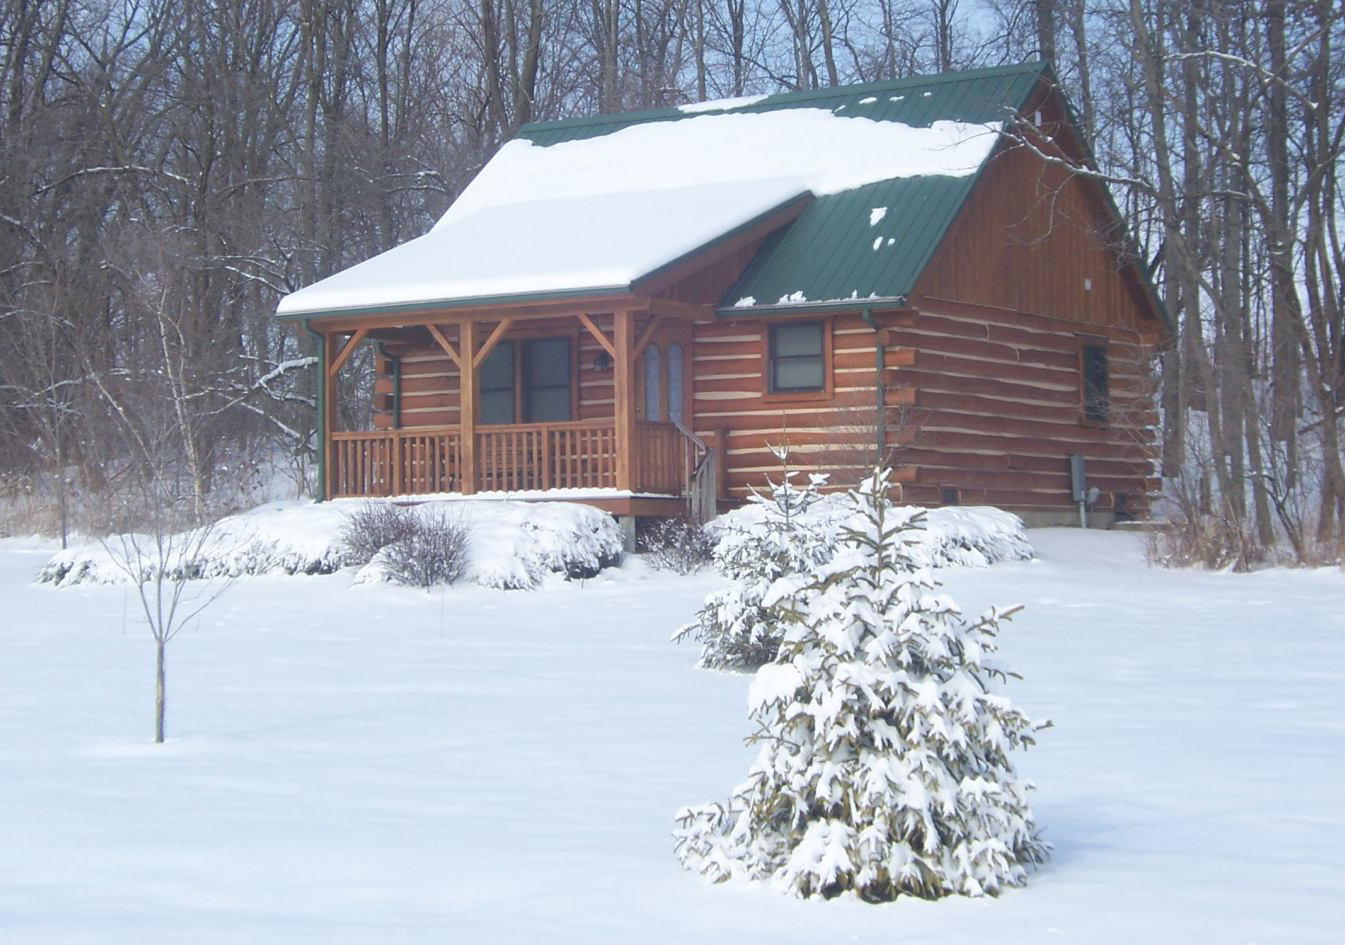 The cabins at cabins and candlelight a romantic log cabin for Winter cabin bedding